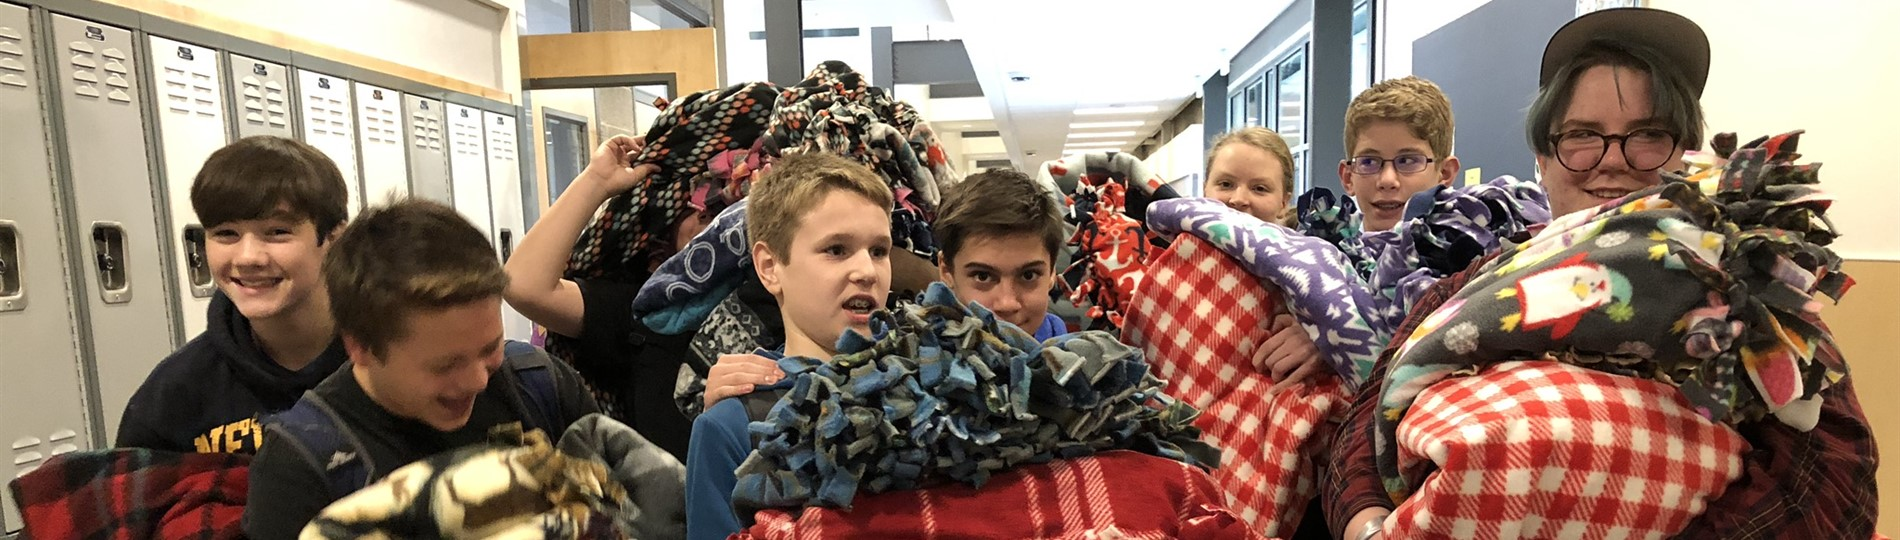 Students carry blankets they made for Winter Hospitality Overflow